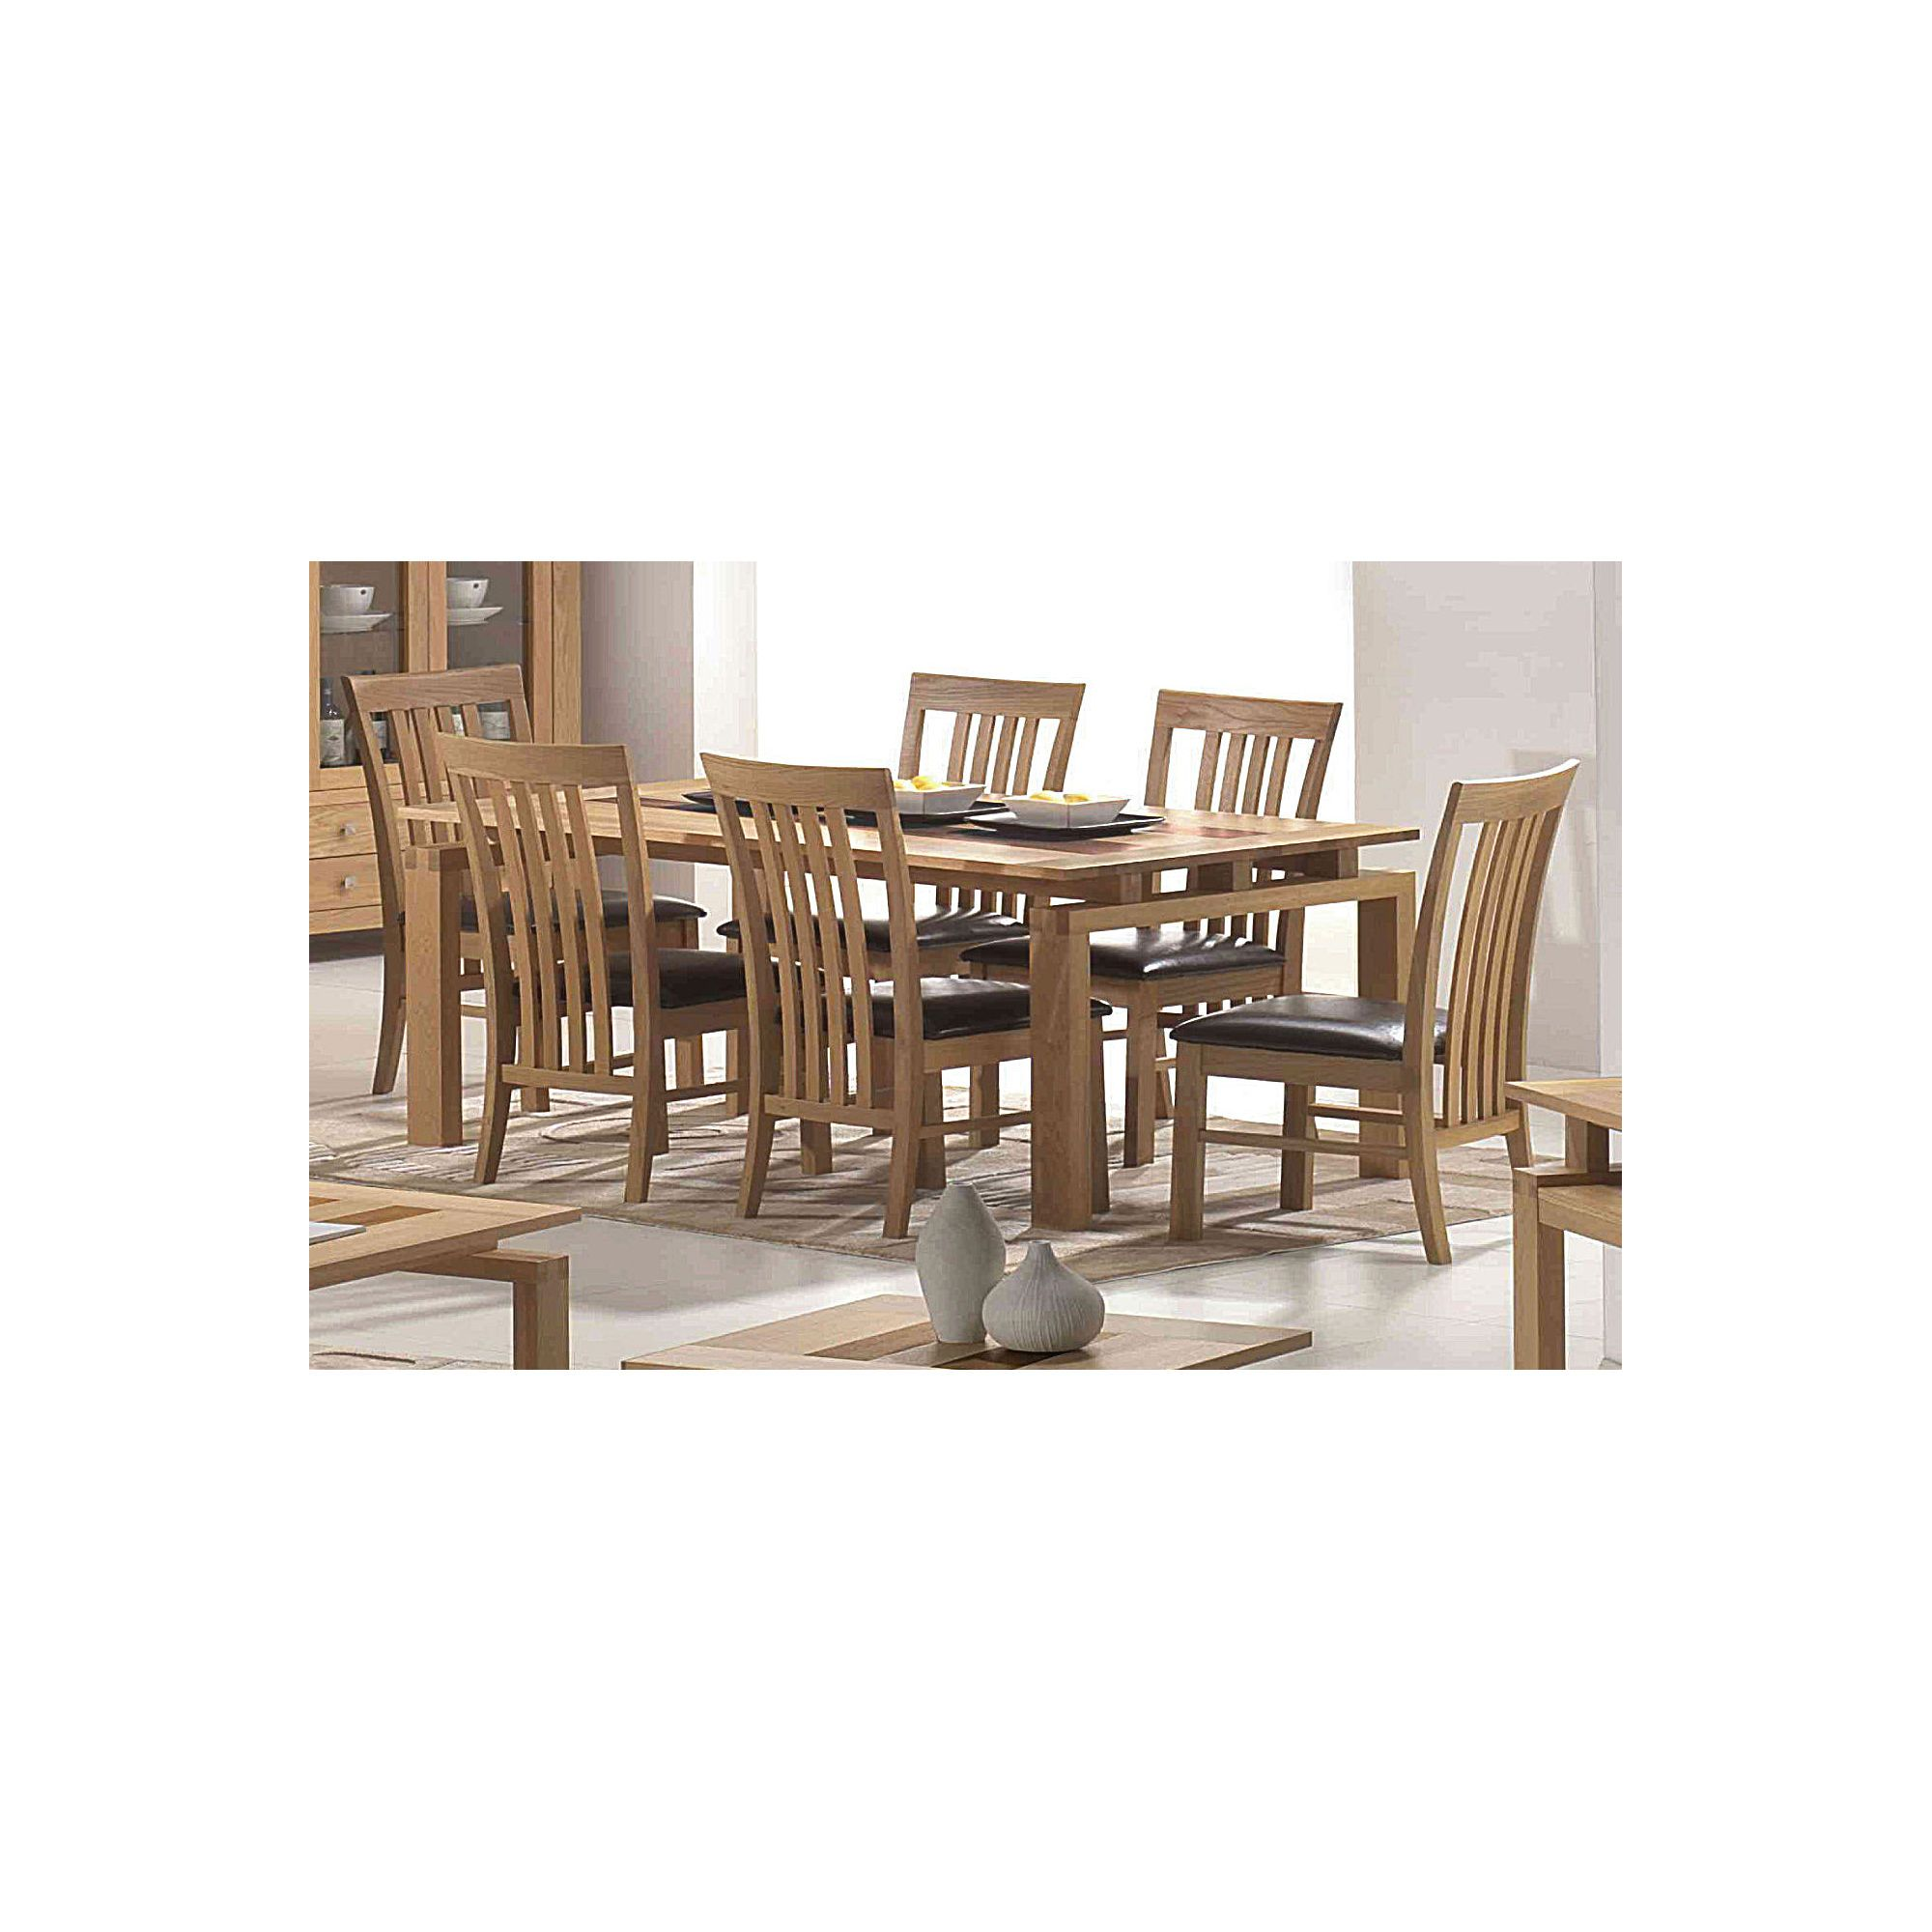 Heartlands Ravenna Solid Oak 7 Piece Dining Set at Tescos Direct